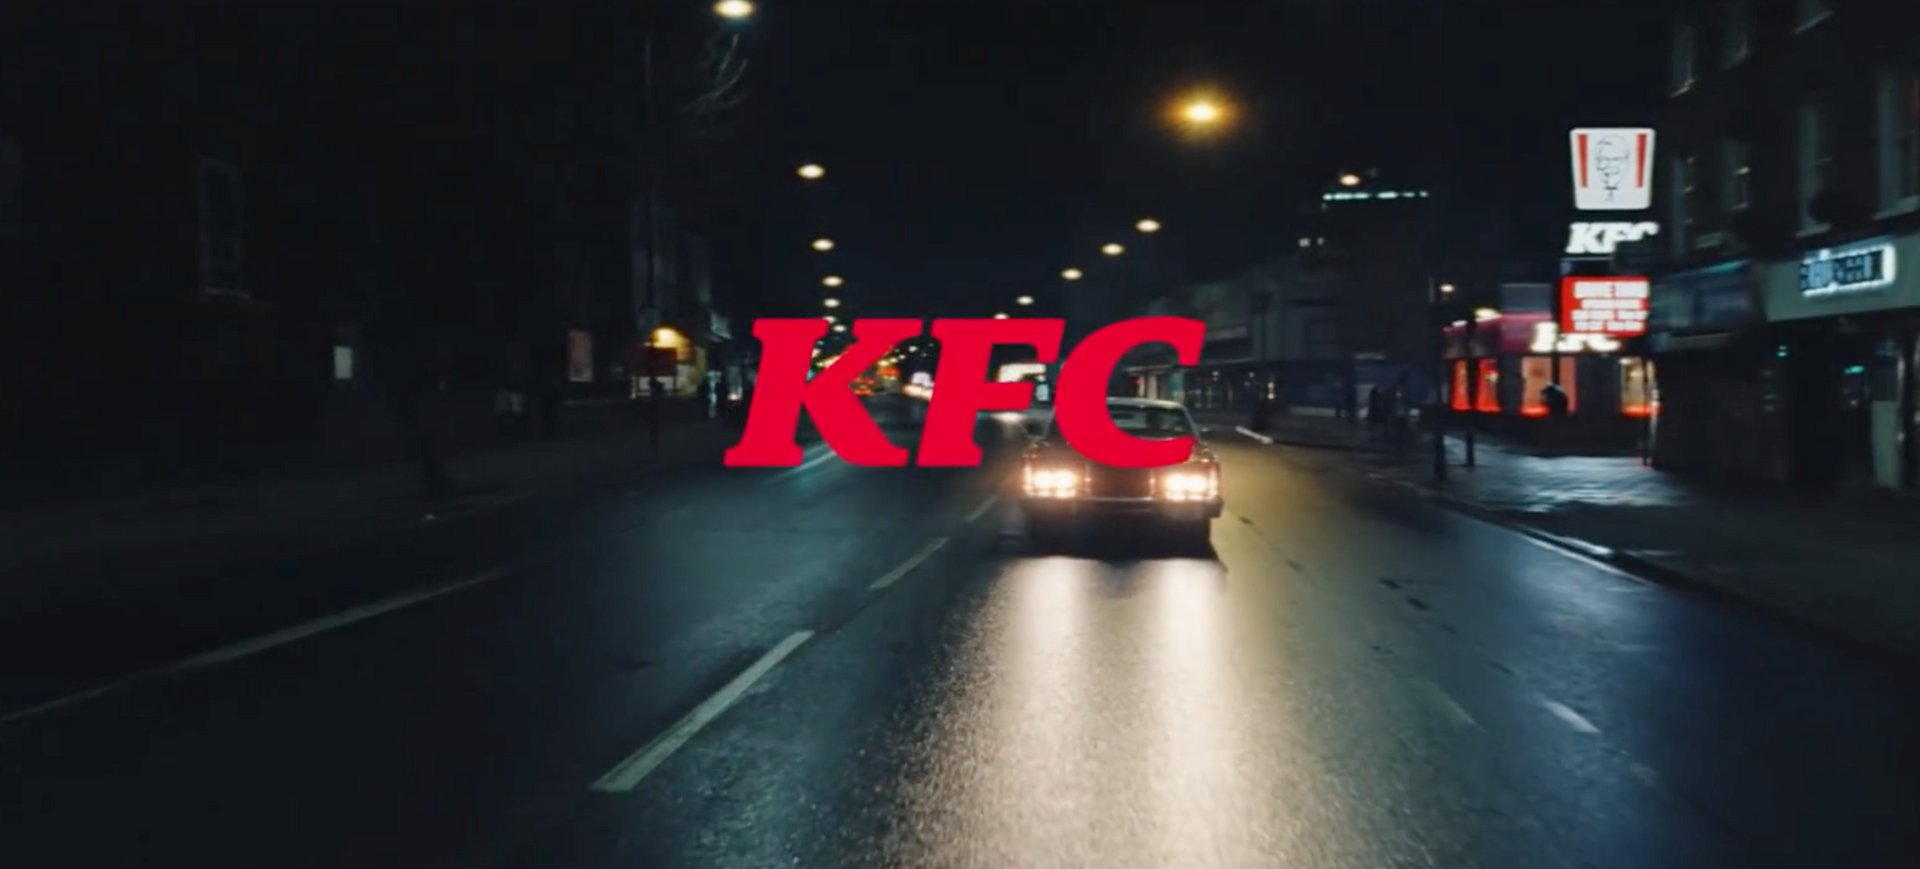 'Chicken Town' - KFC | Pulse Films